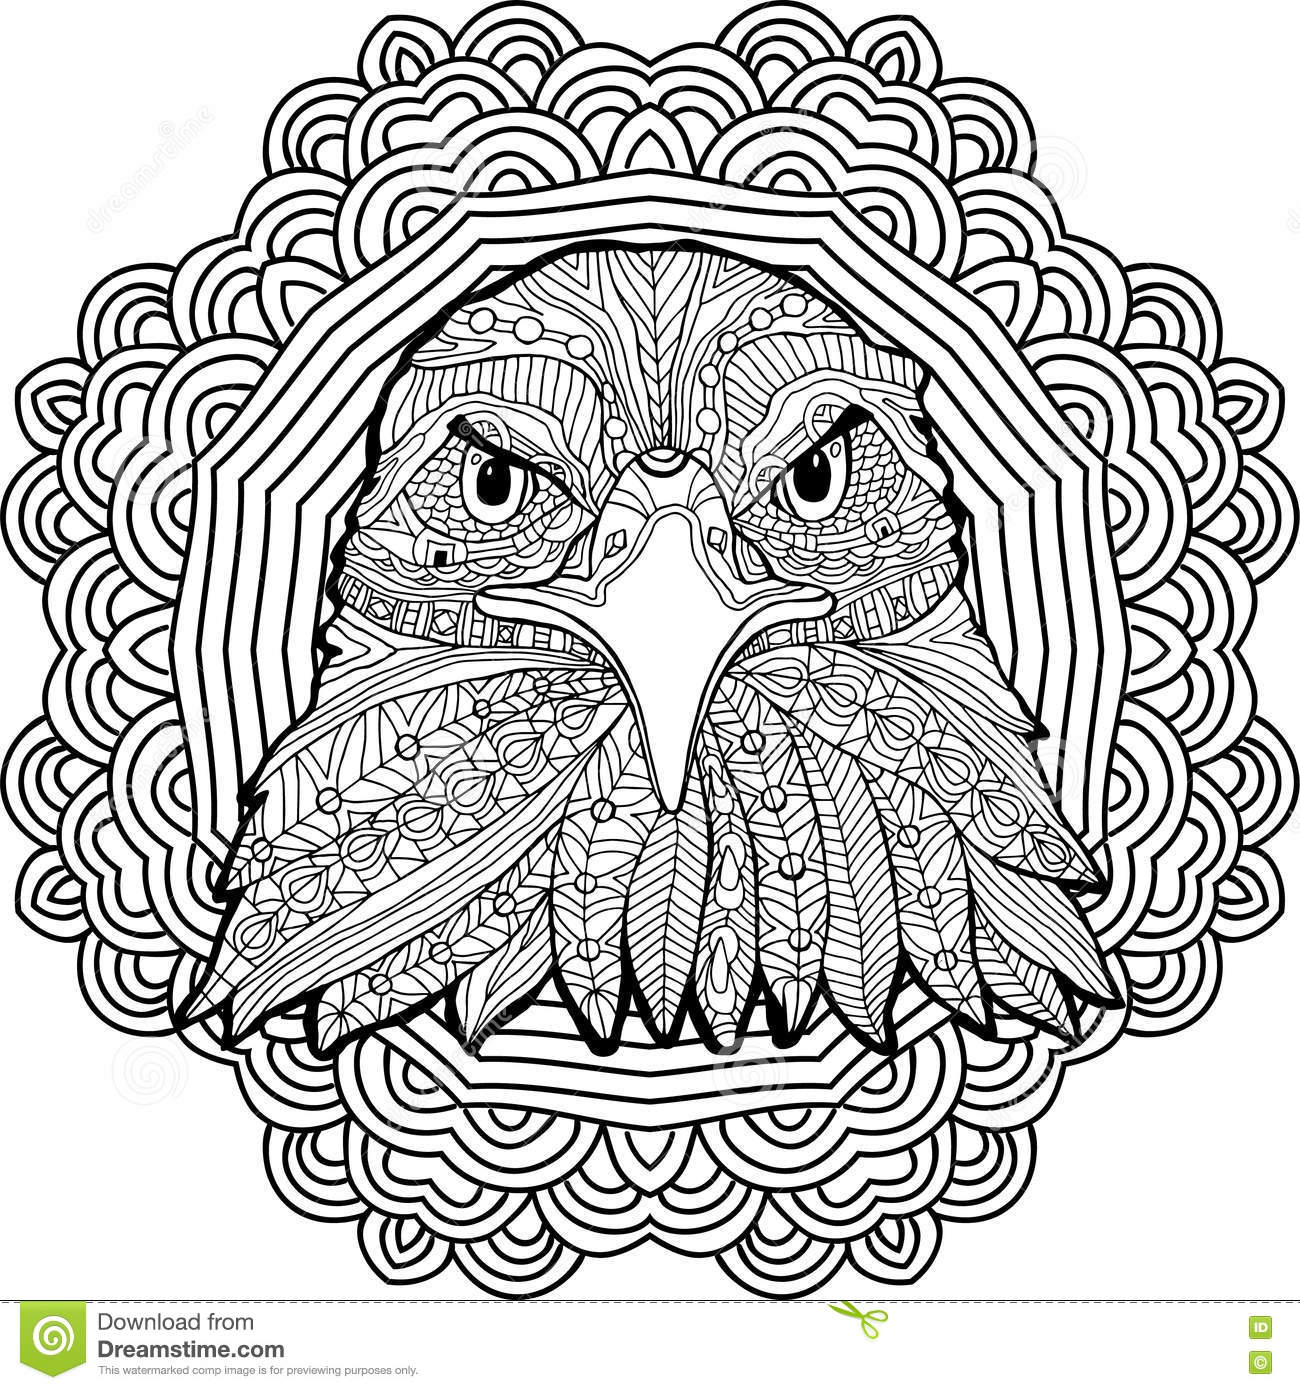 Coloring Page For Adults Stern Eagle On A Background Of A Circular